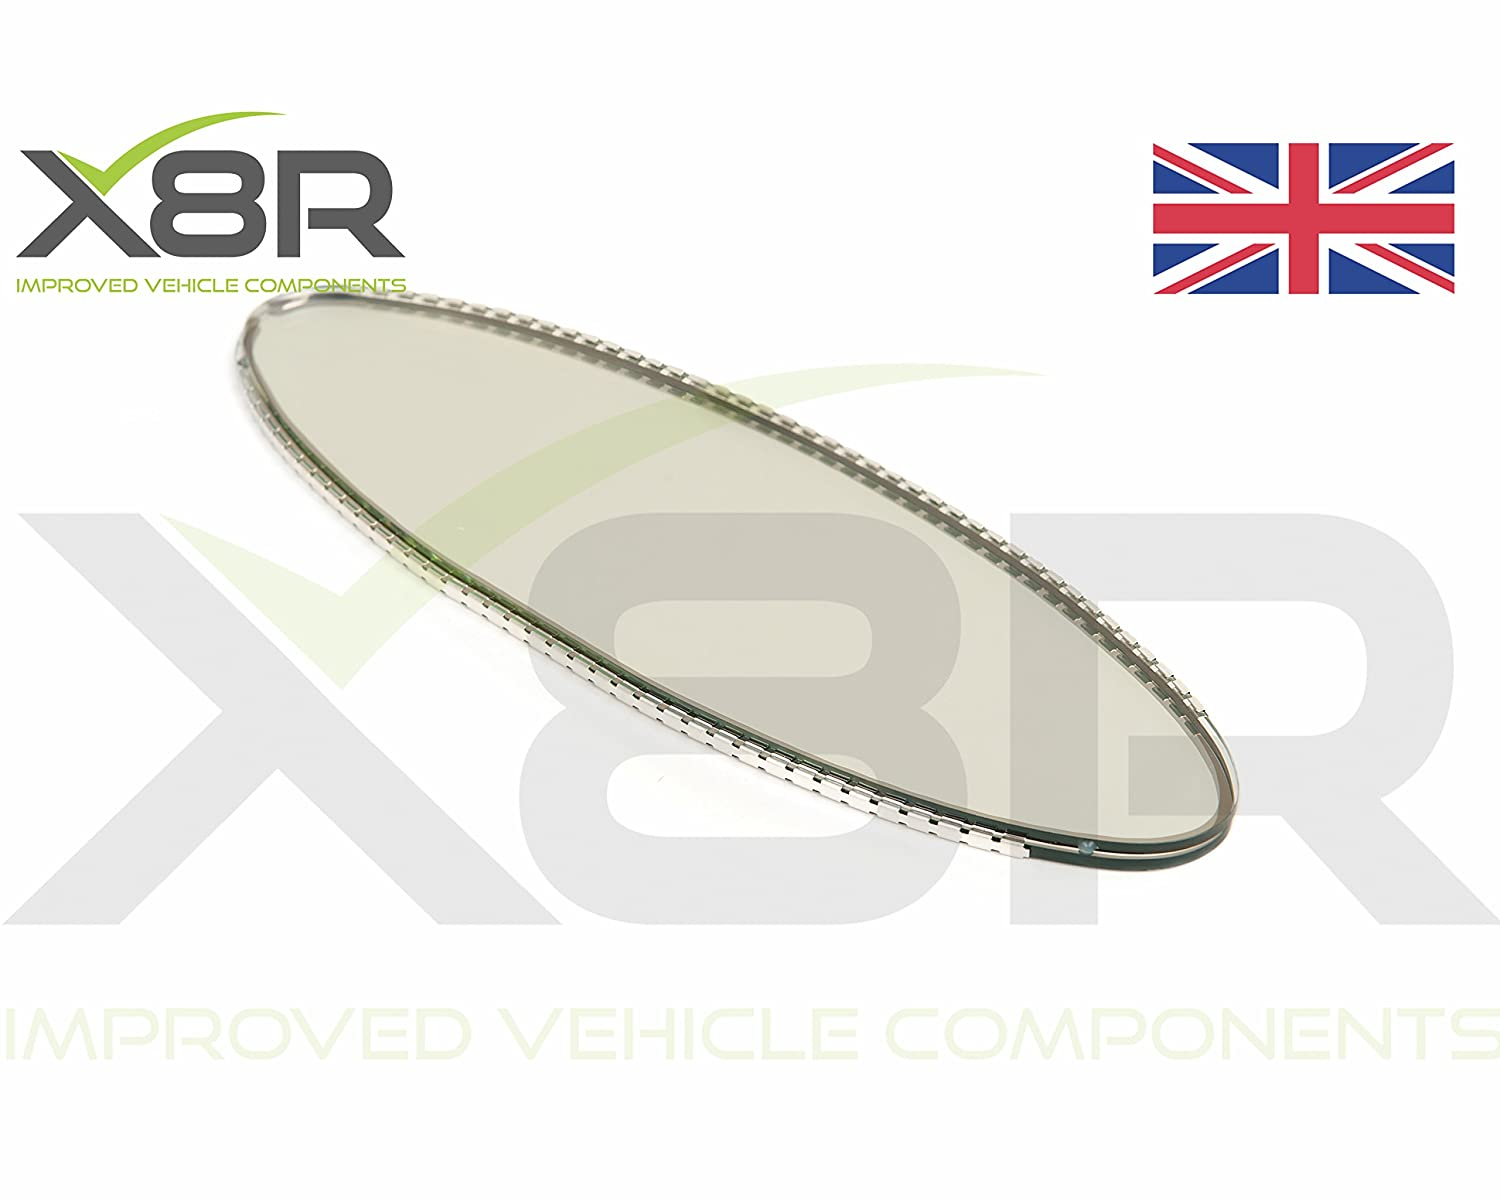 Oval Rear View Mirror Auto Dim Dimming Replacement Glass Cell X8R LTD